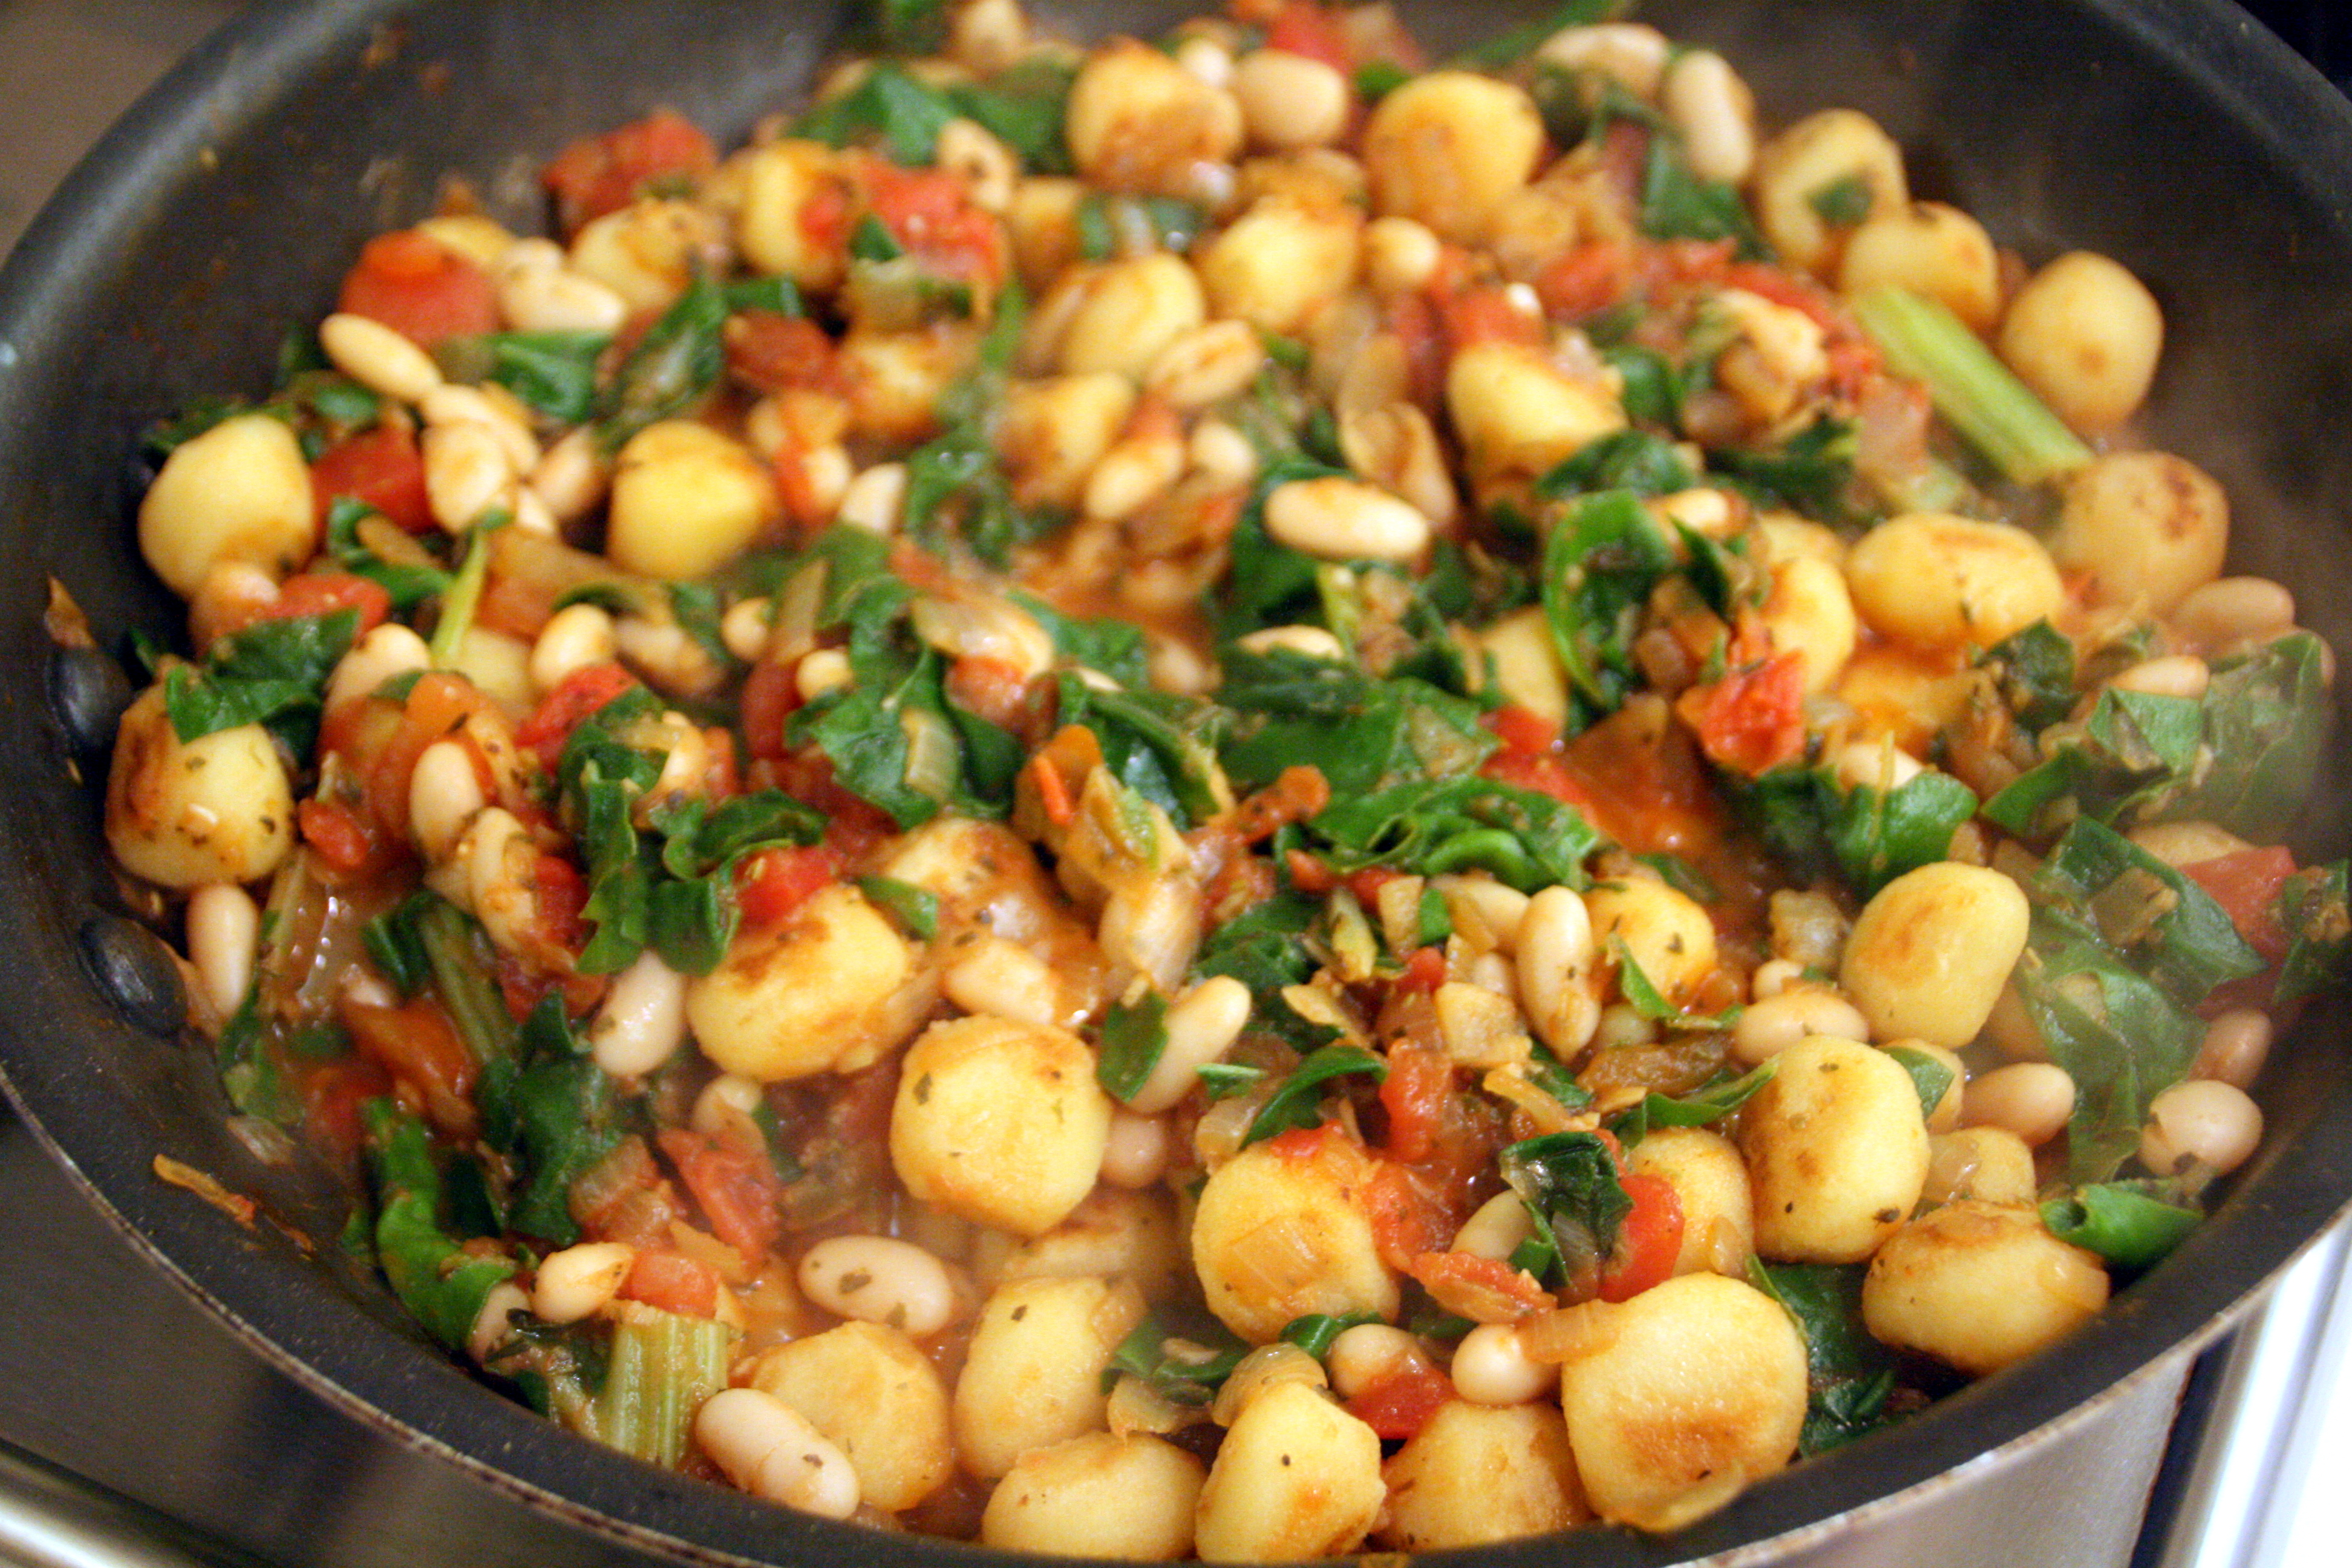 Vegetarian Skillet Gnocchi with Chard and White Beans